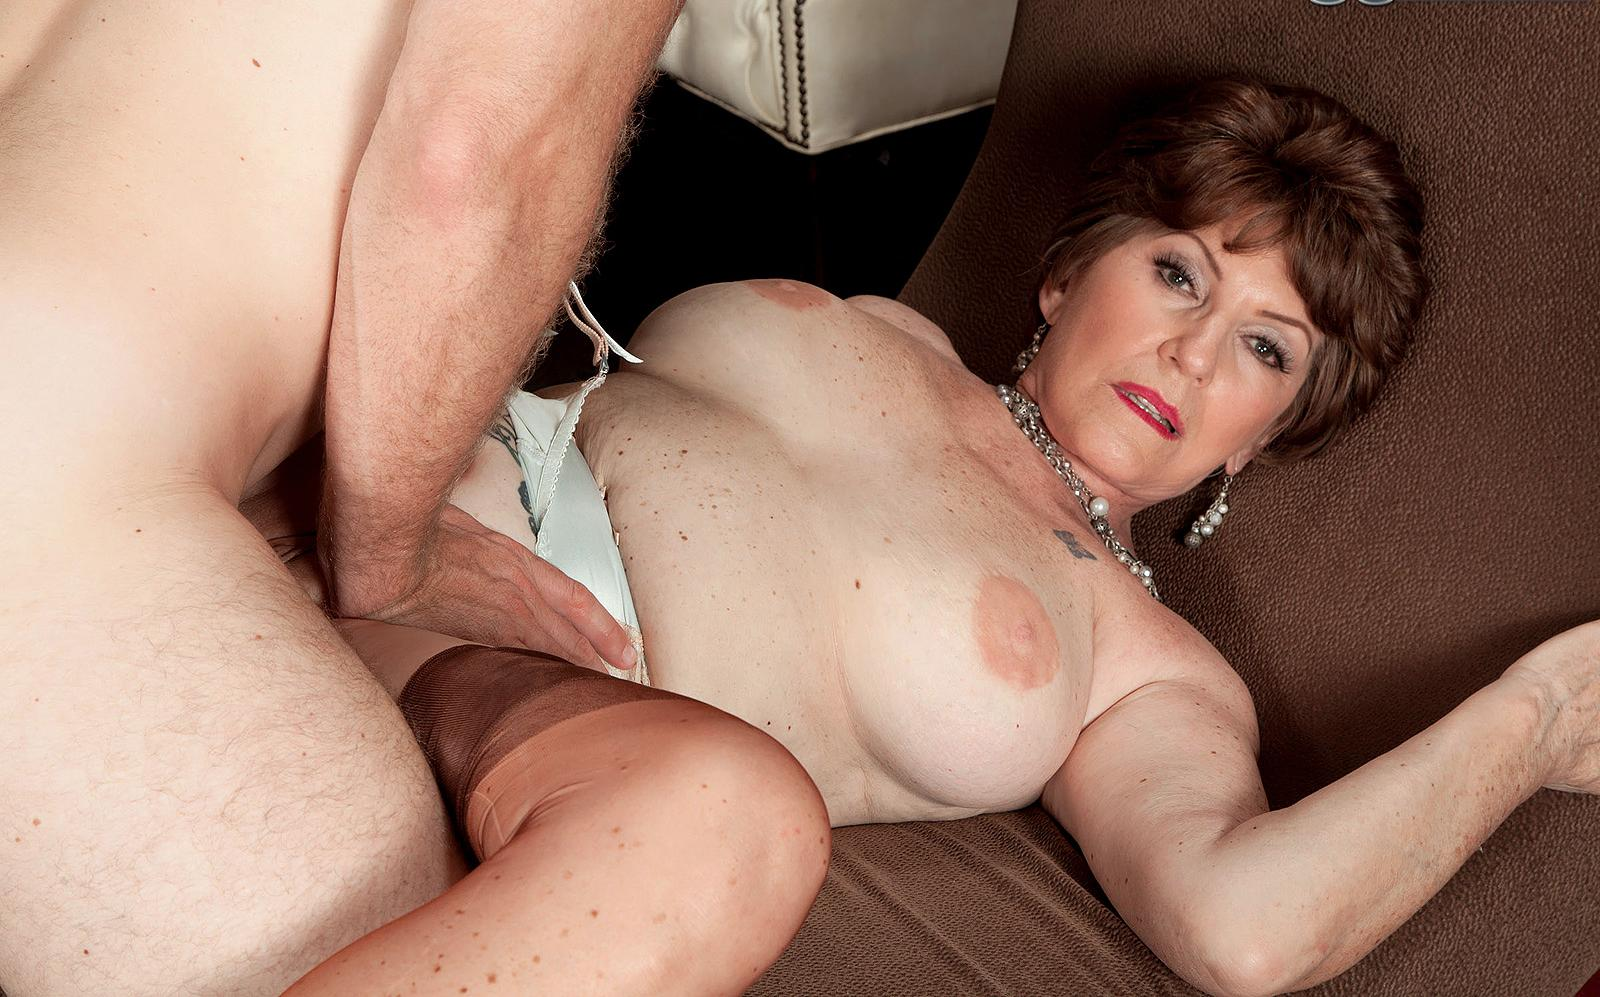 Maya a horny granny getting double plugged in her granny ass and pussy